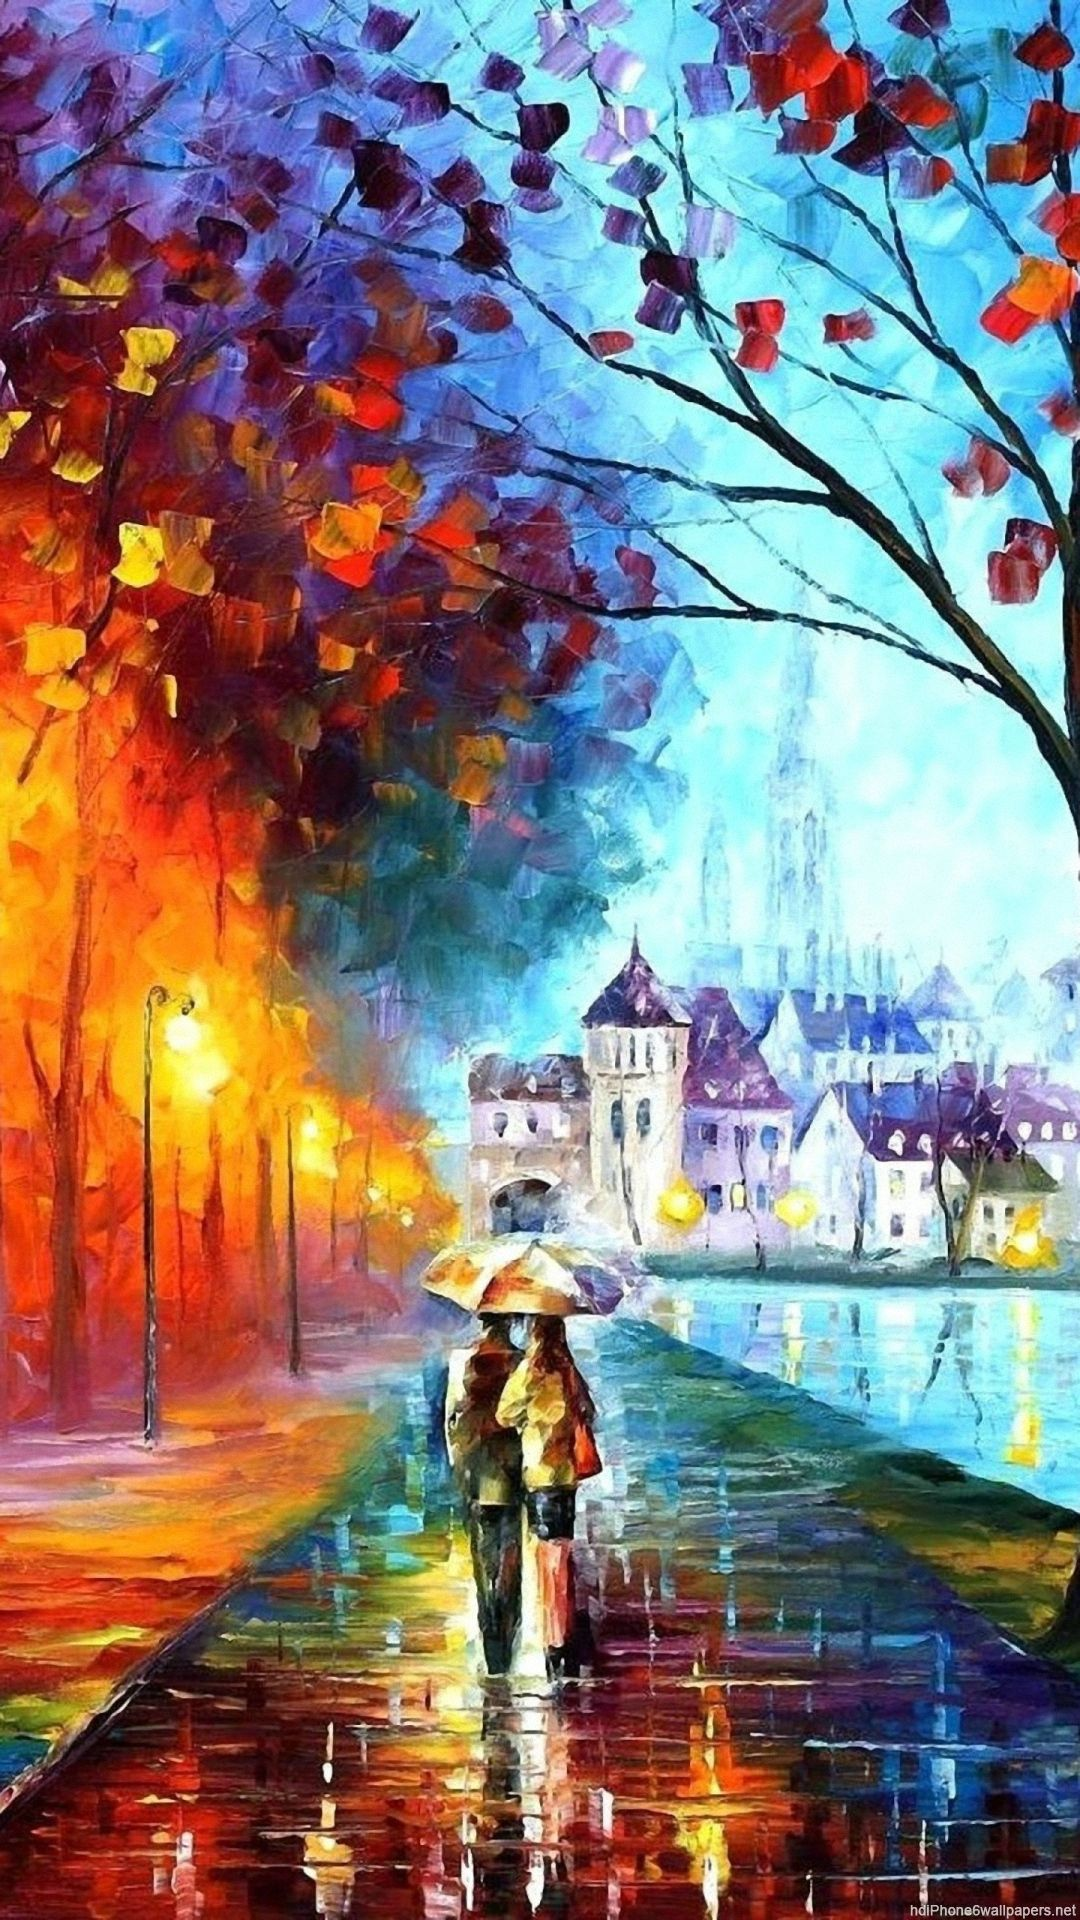 Autumn Drawing Iphone 6 Wallpapers Hd And 1080p 6 Plus Wallpapers Pop Art Wallpaper Fall Wallpaper Scenery Wallpaper